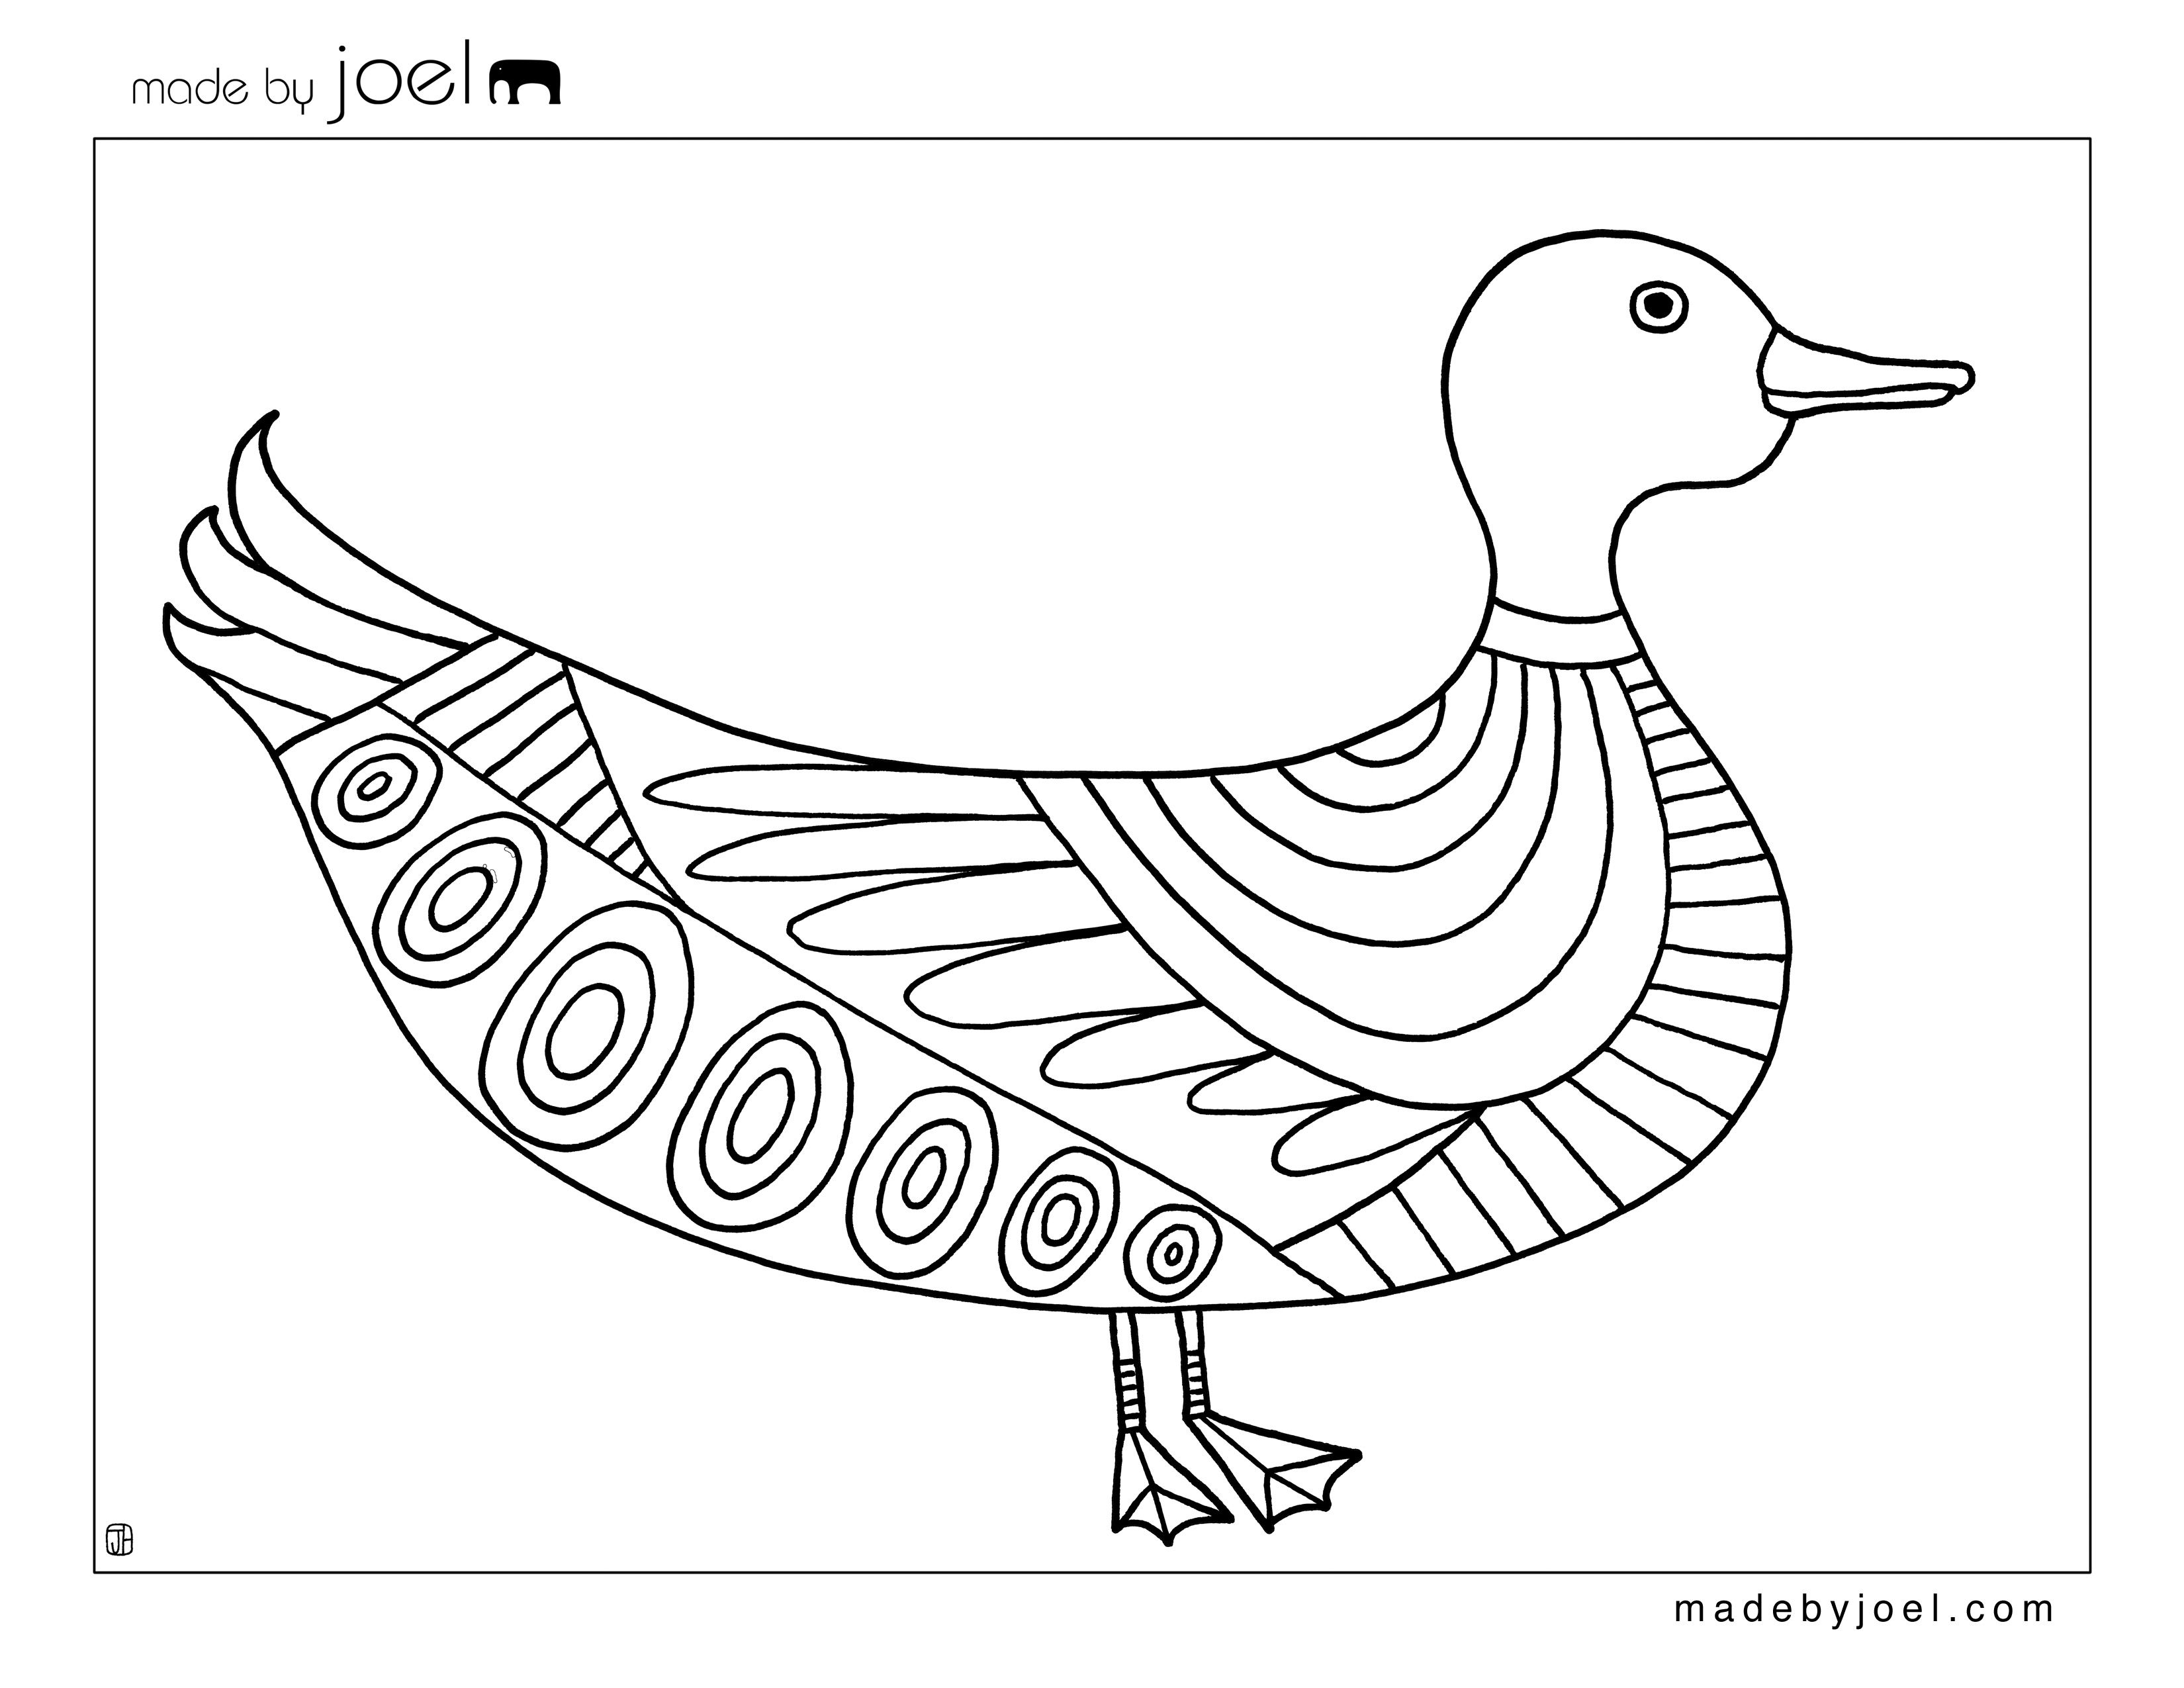 Made By Joel Duck Coloring Sheet Free Printable Template Lots Of Options